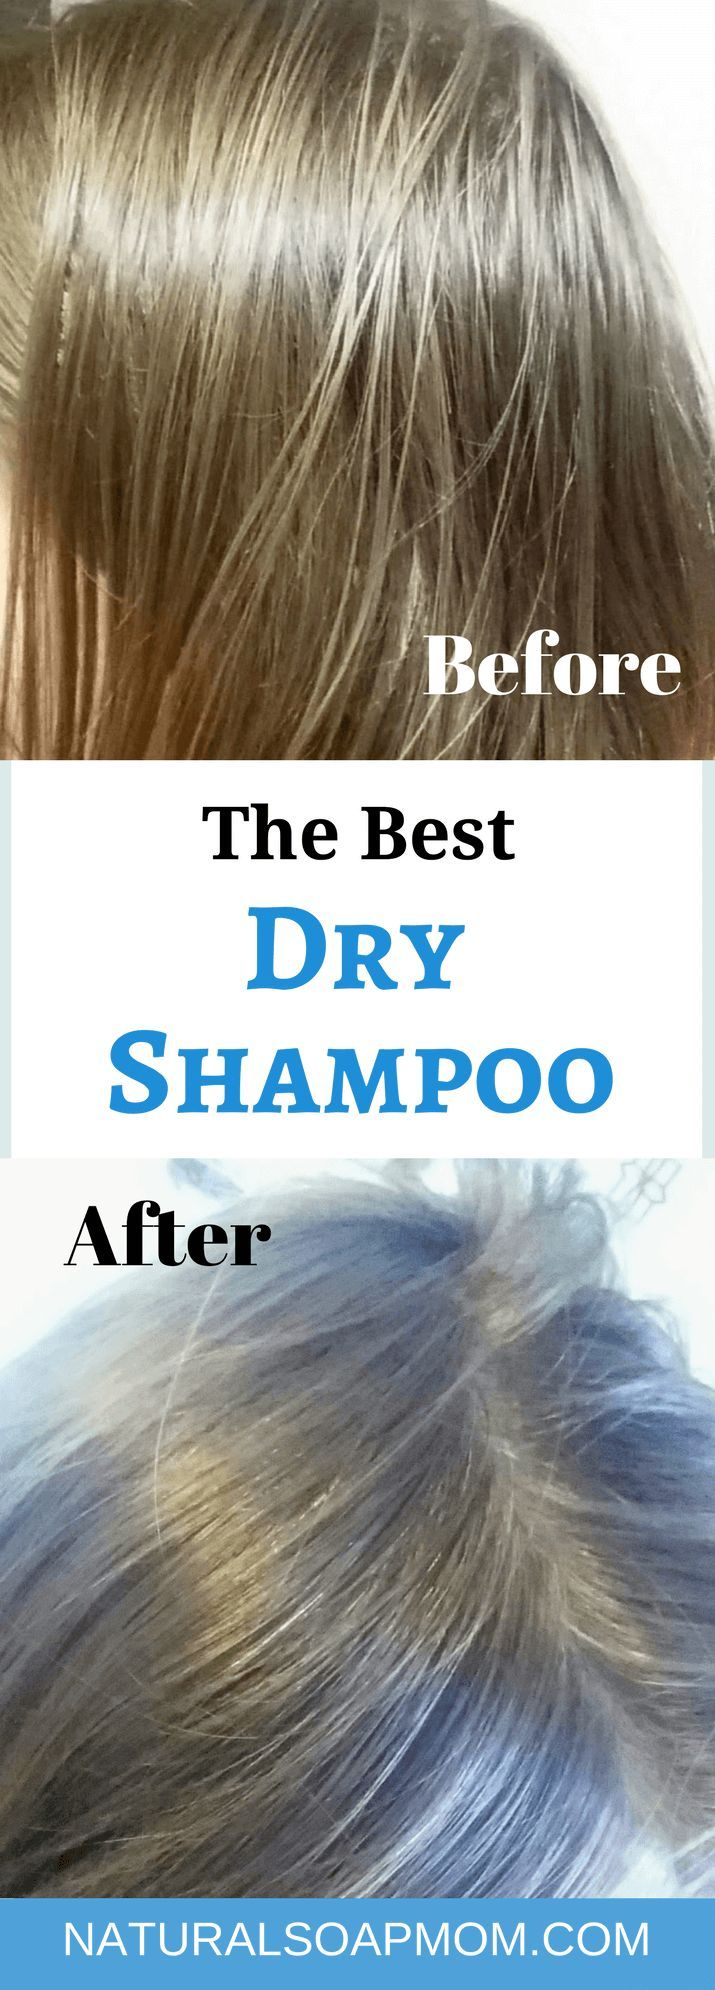 The Best Diy Dry Shampoo And How To Use It Completely Customizable Dry Shampoo Diy Dry Shampoo Batiste Dry Shampoo